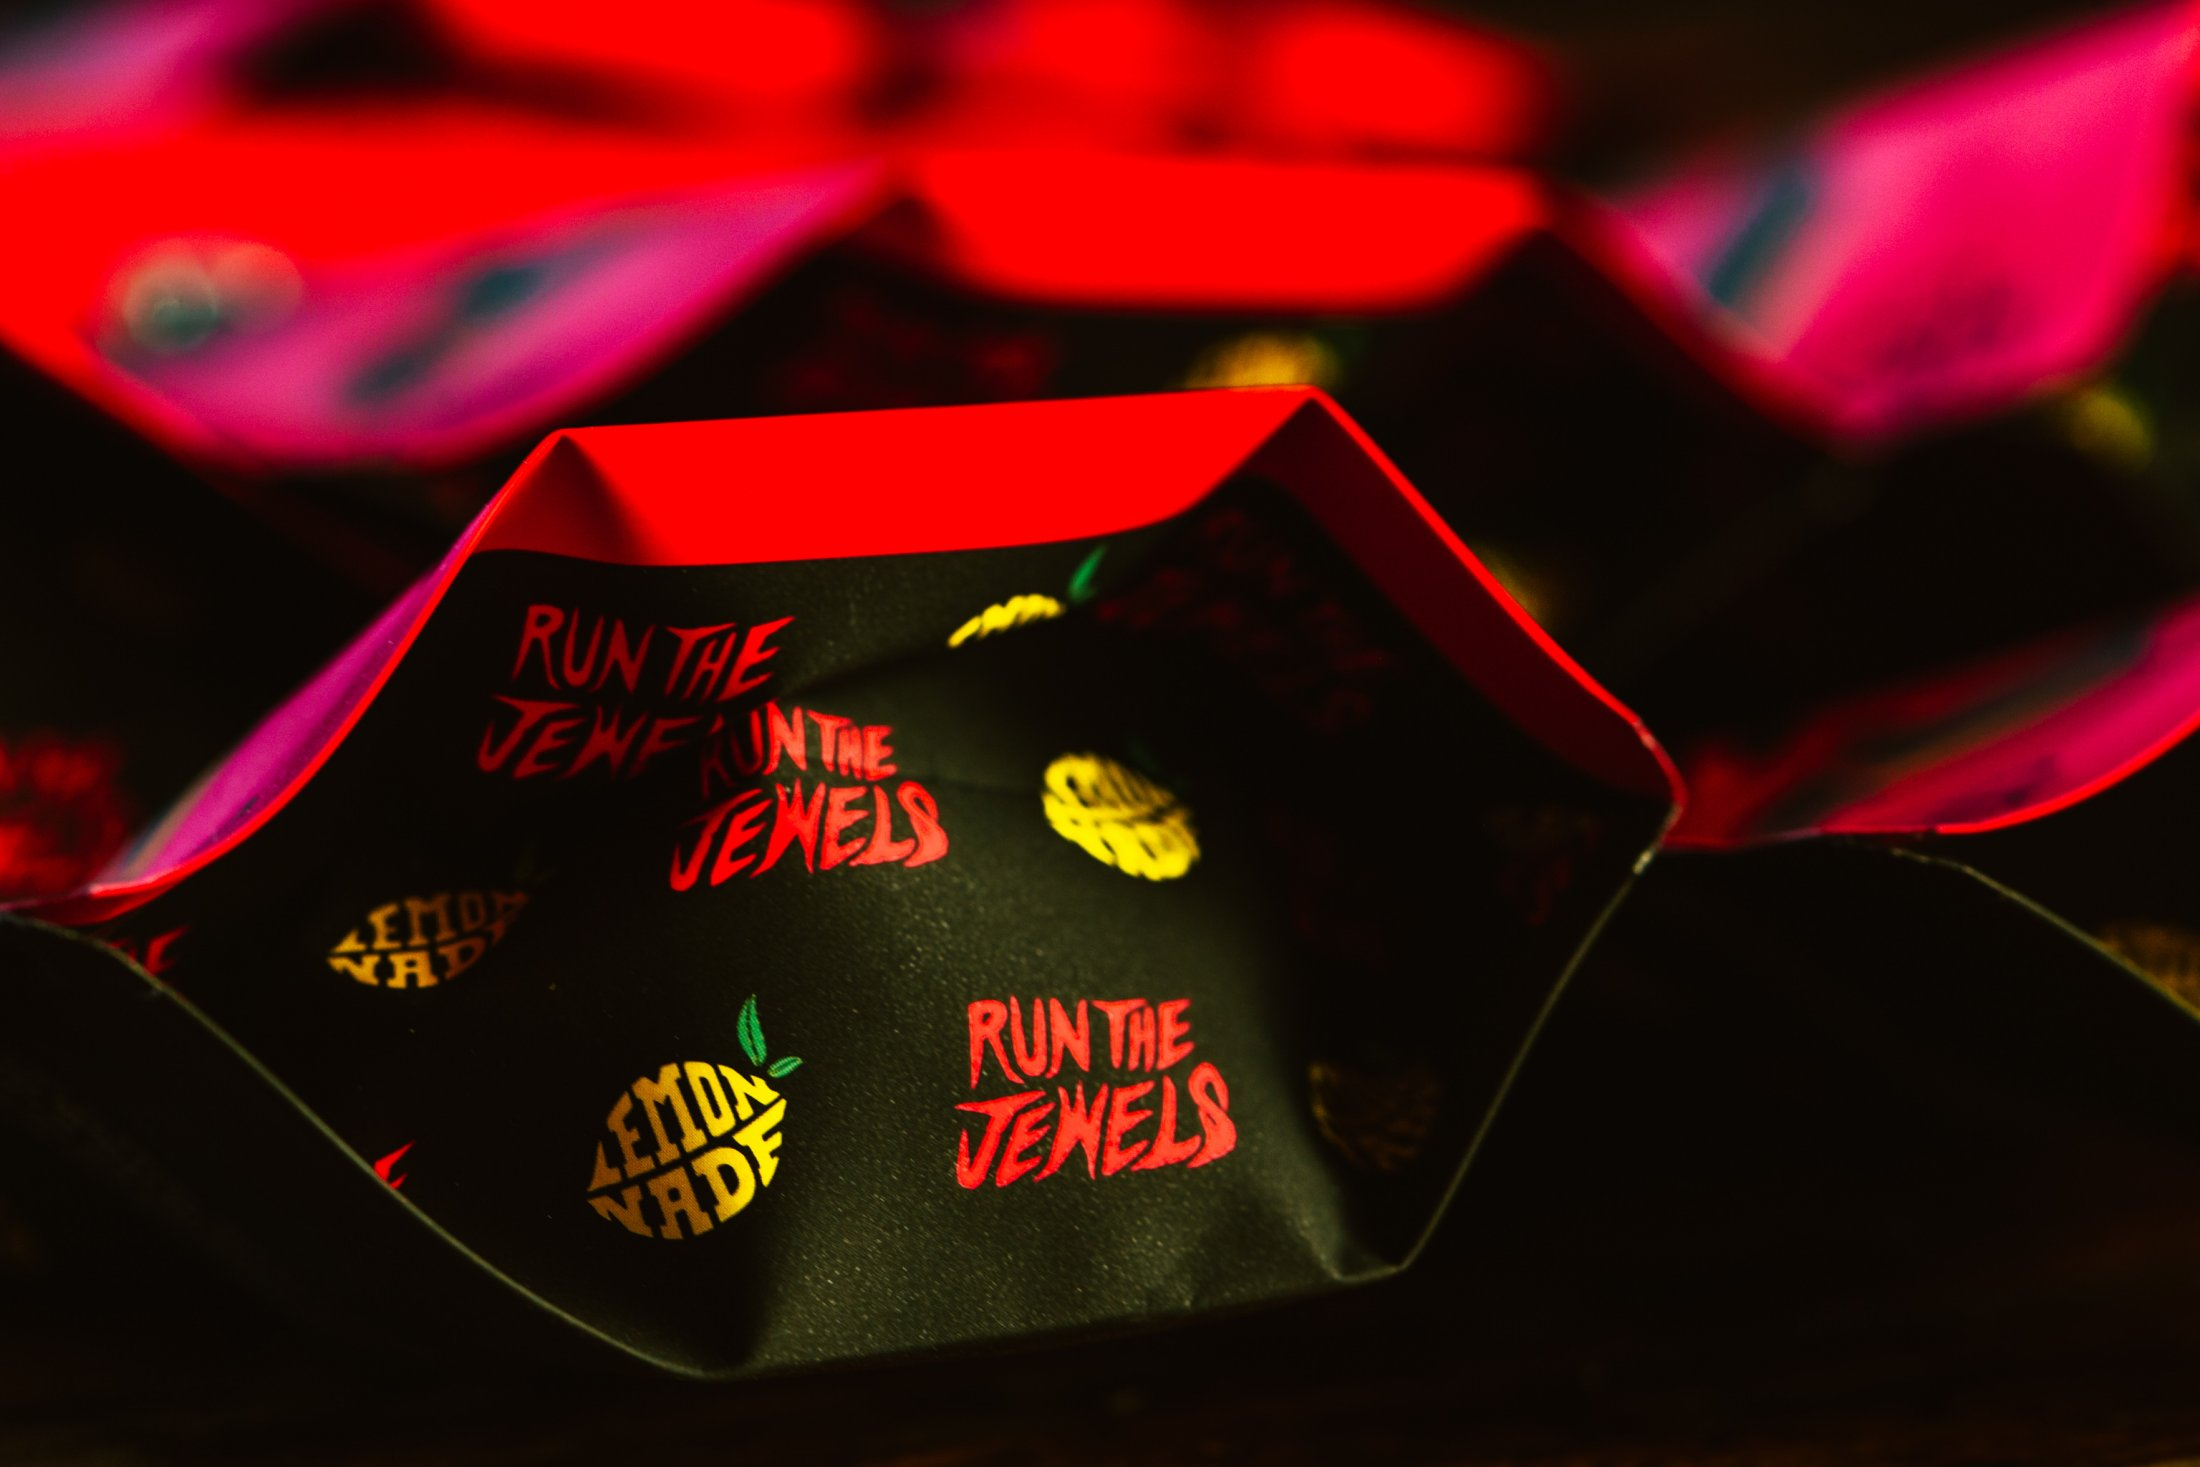 Thumbnail for Roll the Jewels...